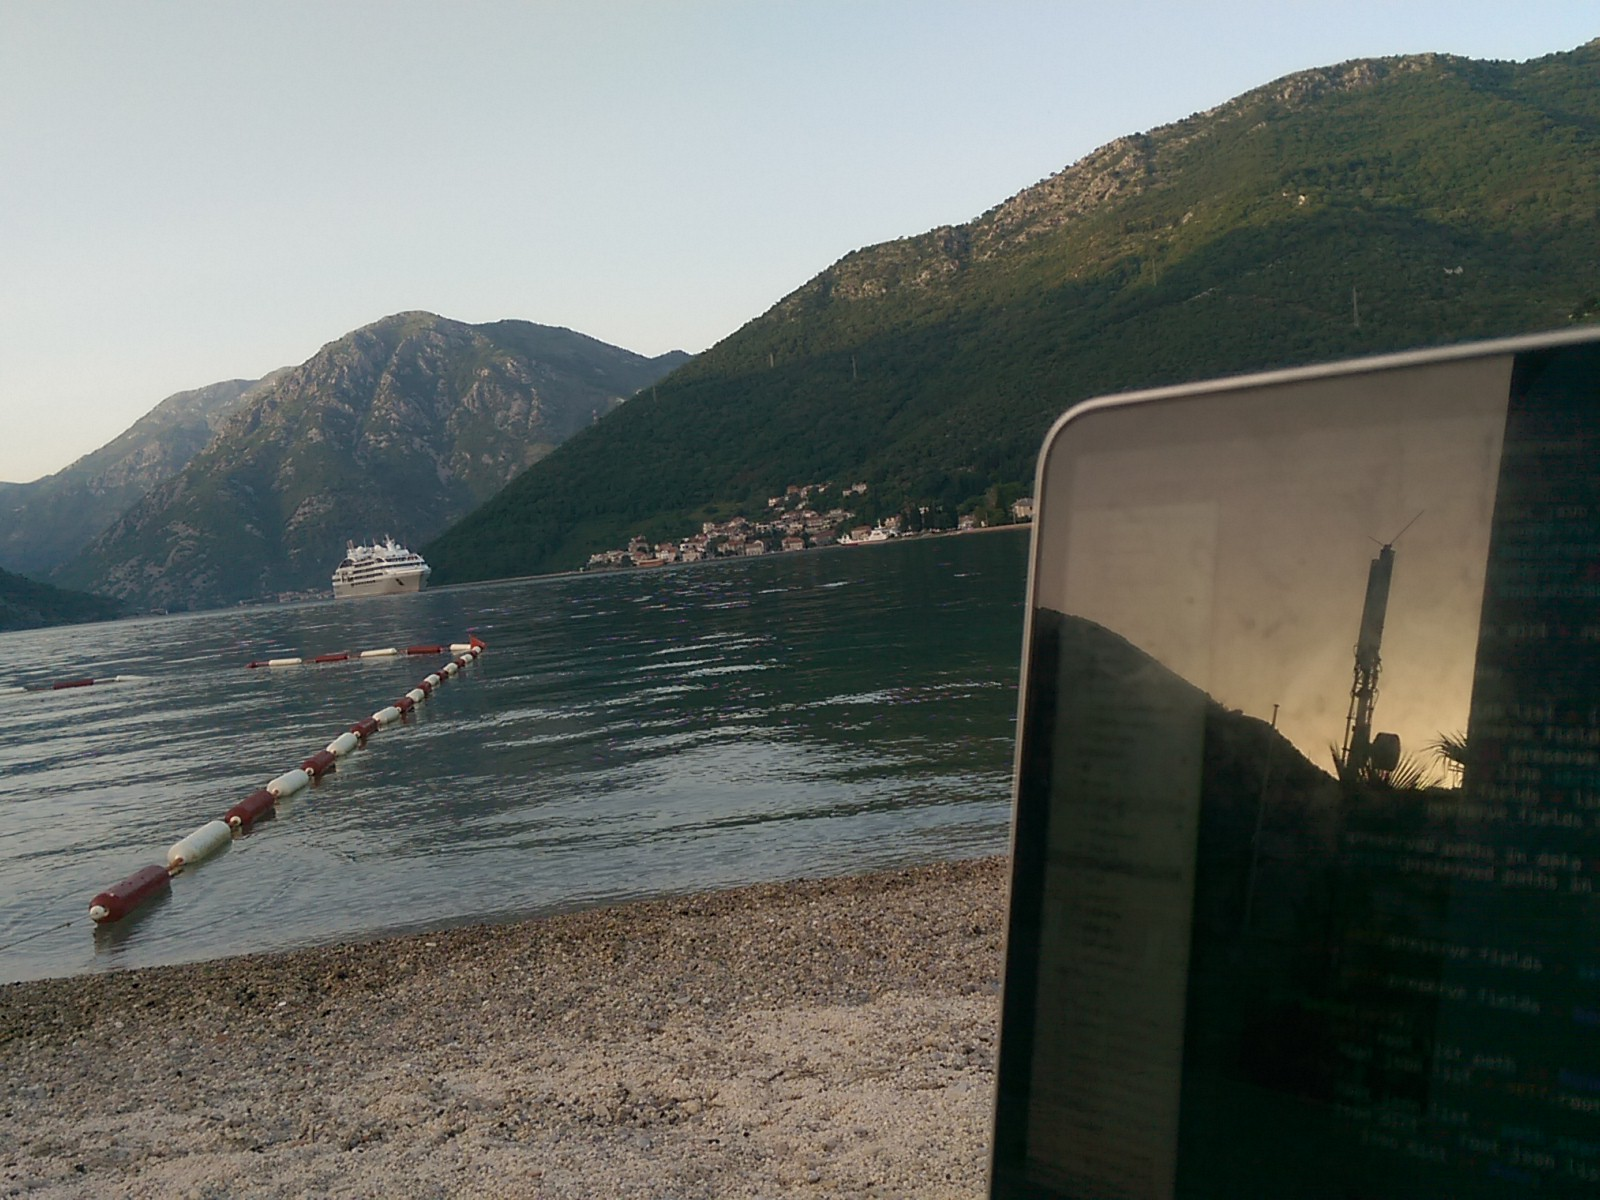 The corner of a laptop screen on the right side, with sand, sea, and green mountains behind